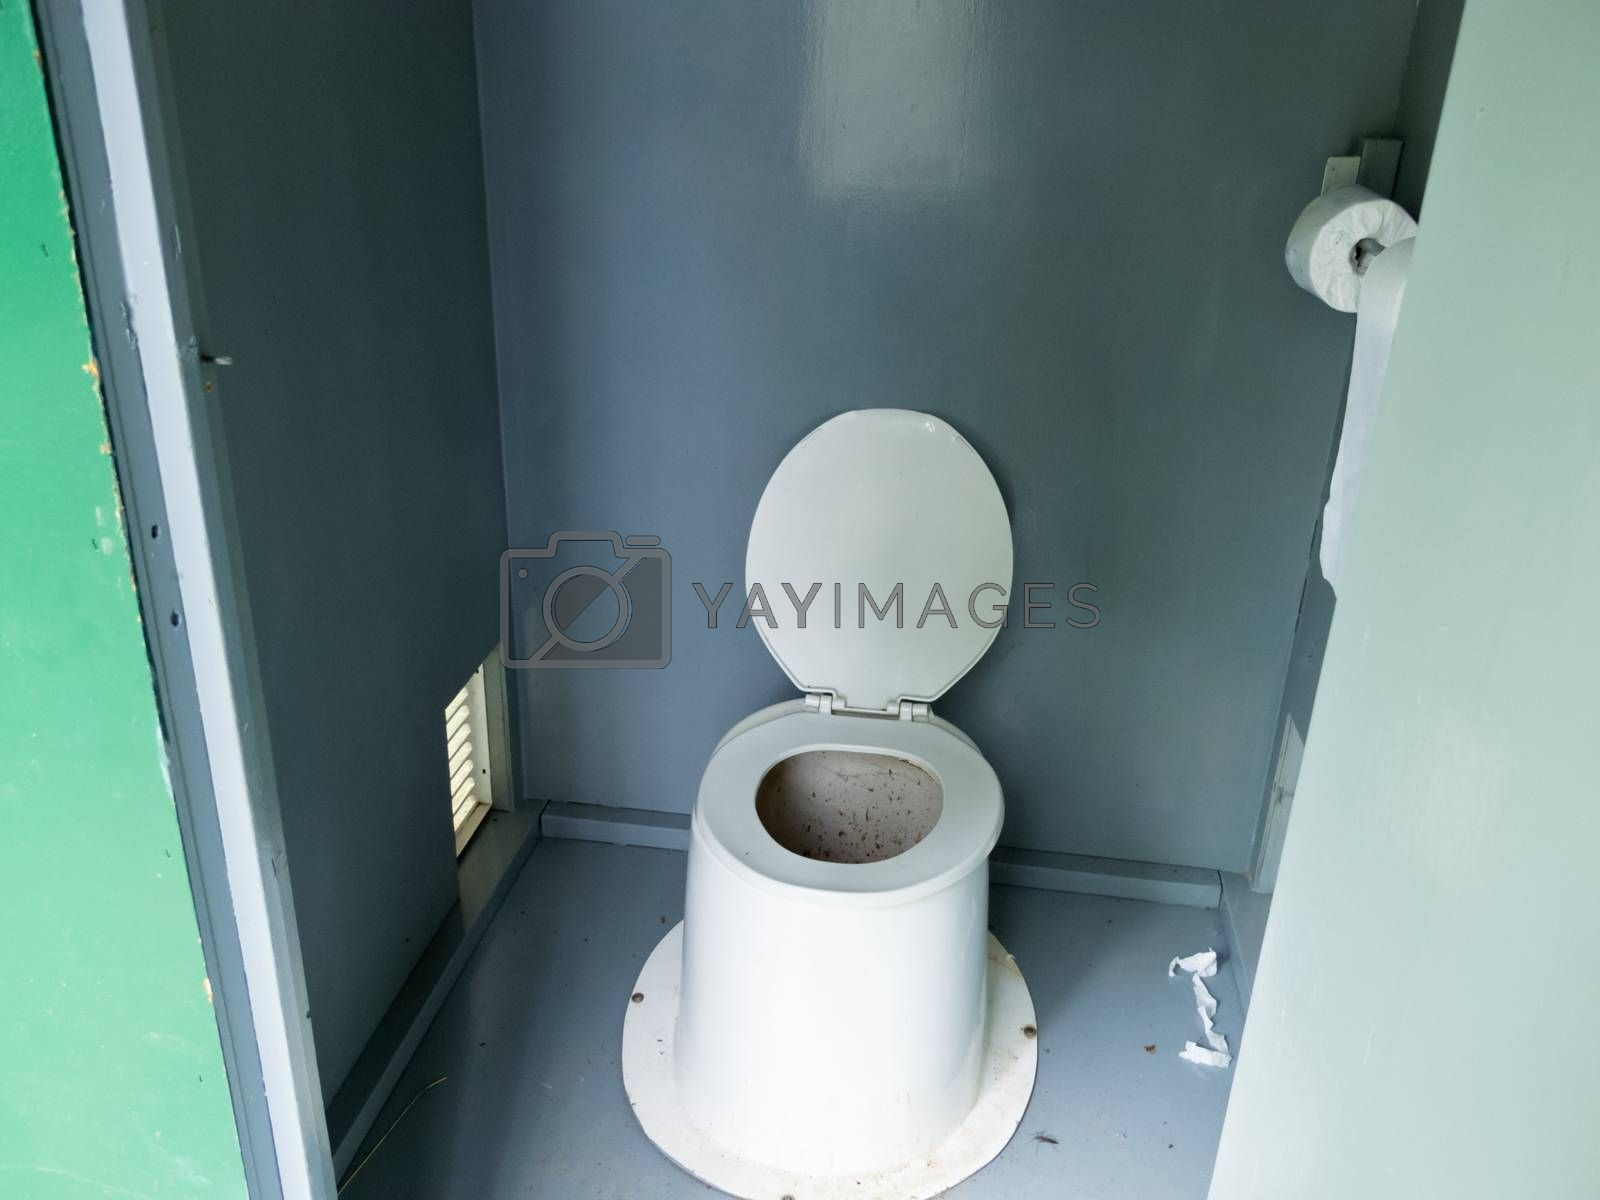 Filthy camp ground outhouse latrine inside toilet by PiLens